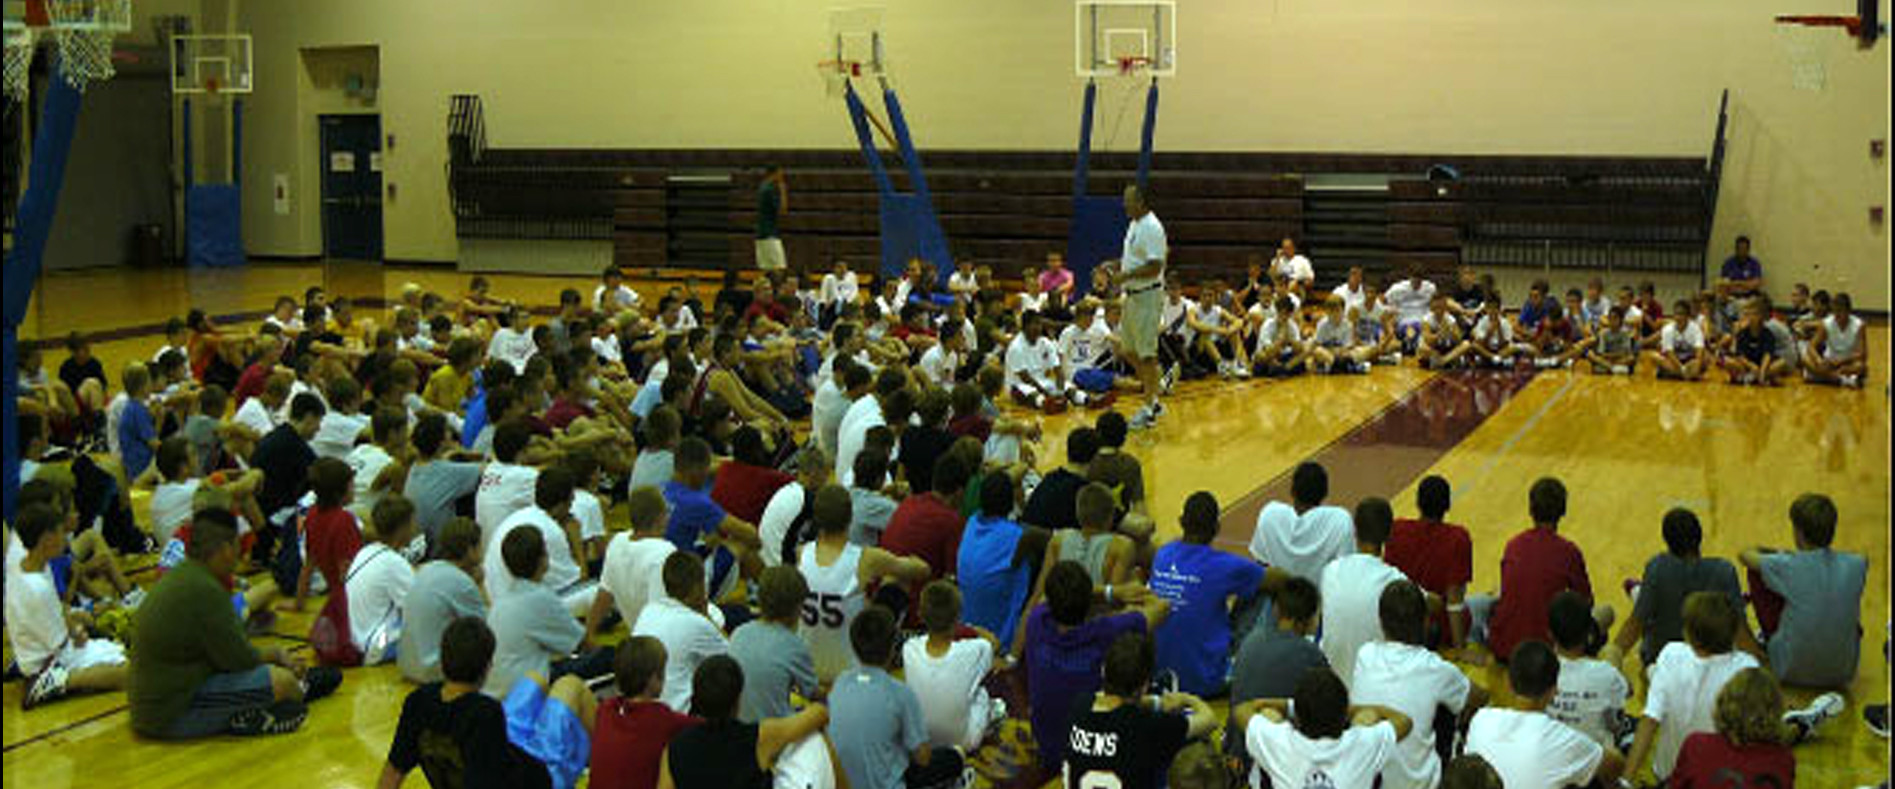 Dick Baumgartner's Basketball Shooting Camp - Where Great Shooters Are Made Not Born